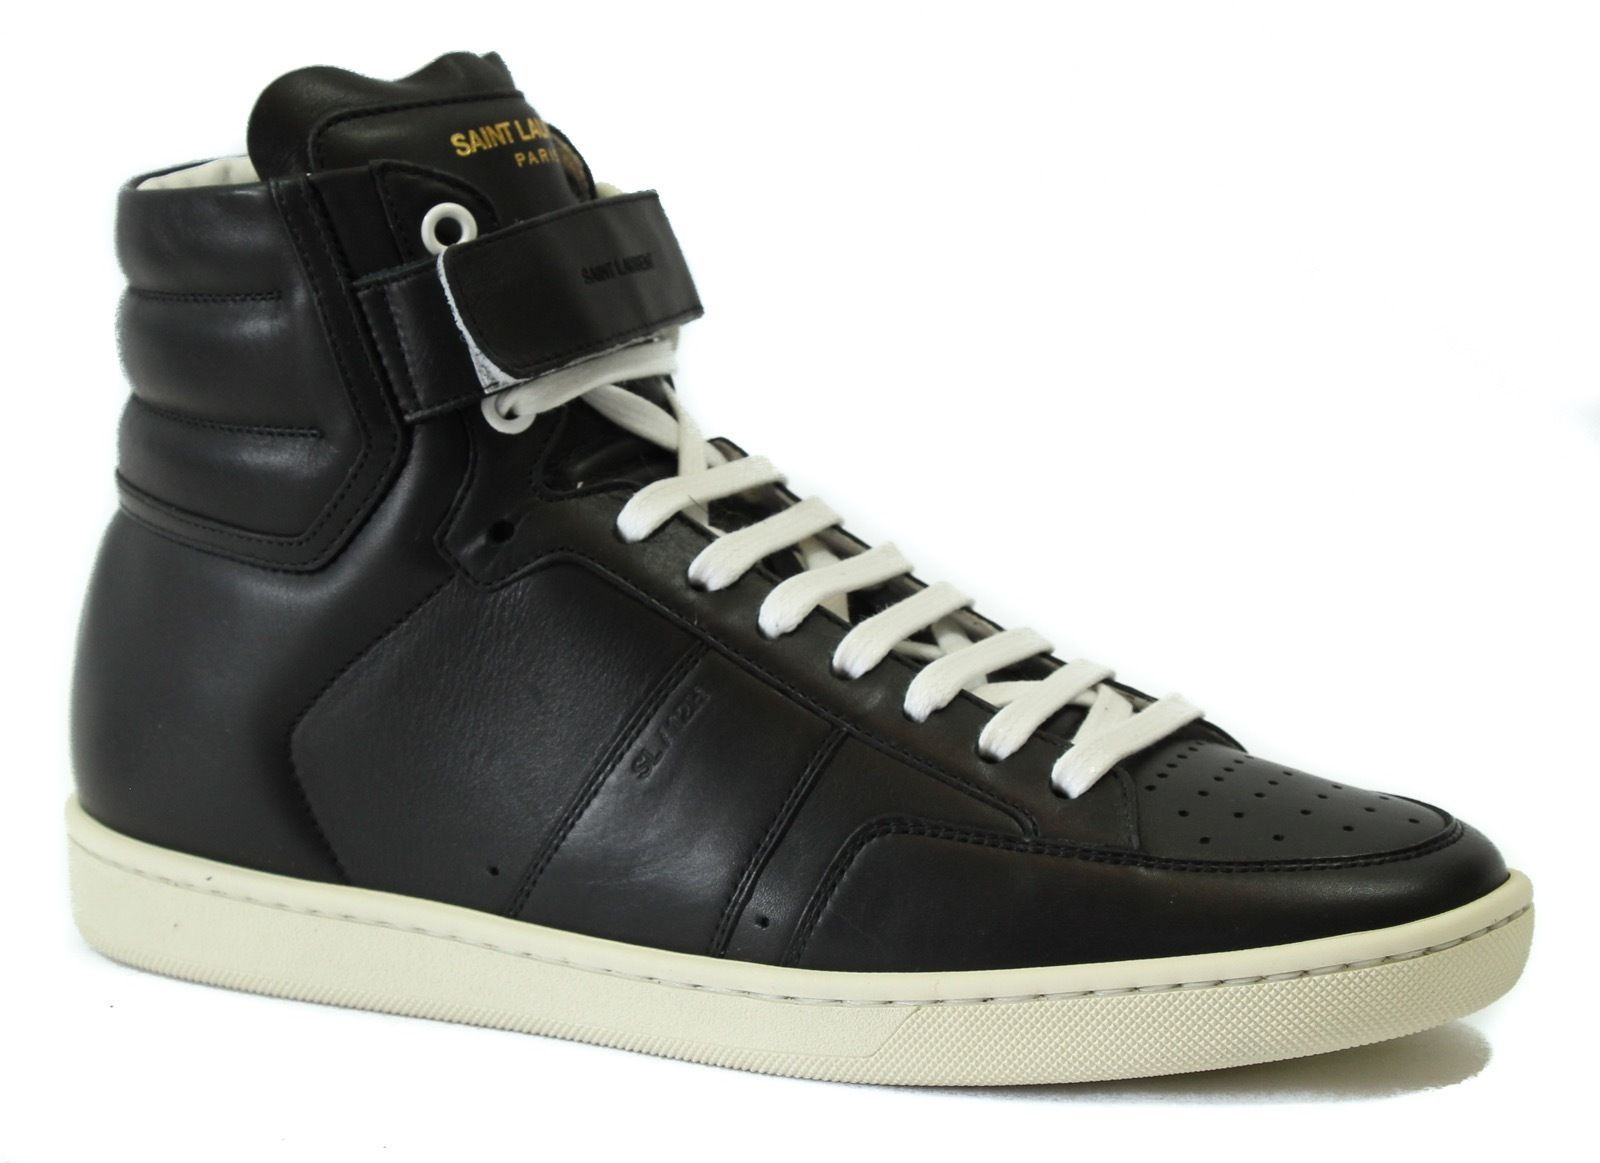 3b62a40734 Ysl Yves Saint Laurent Sneaker: 1 customer review and 3 listings